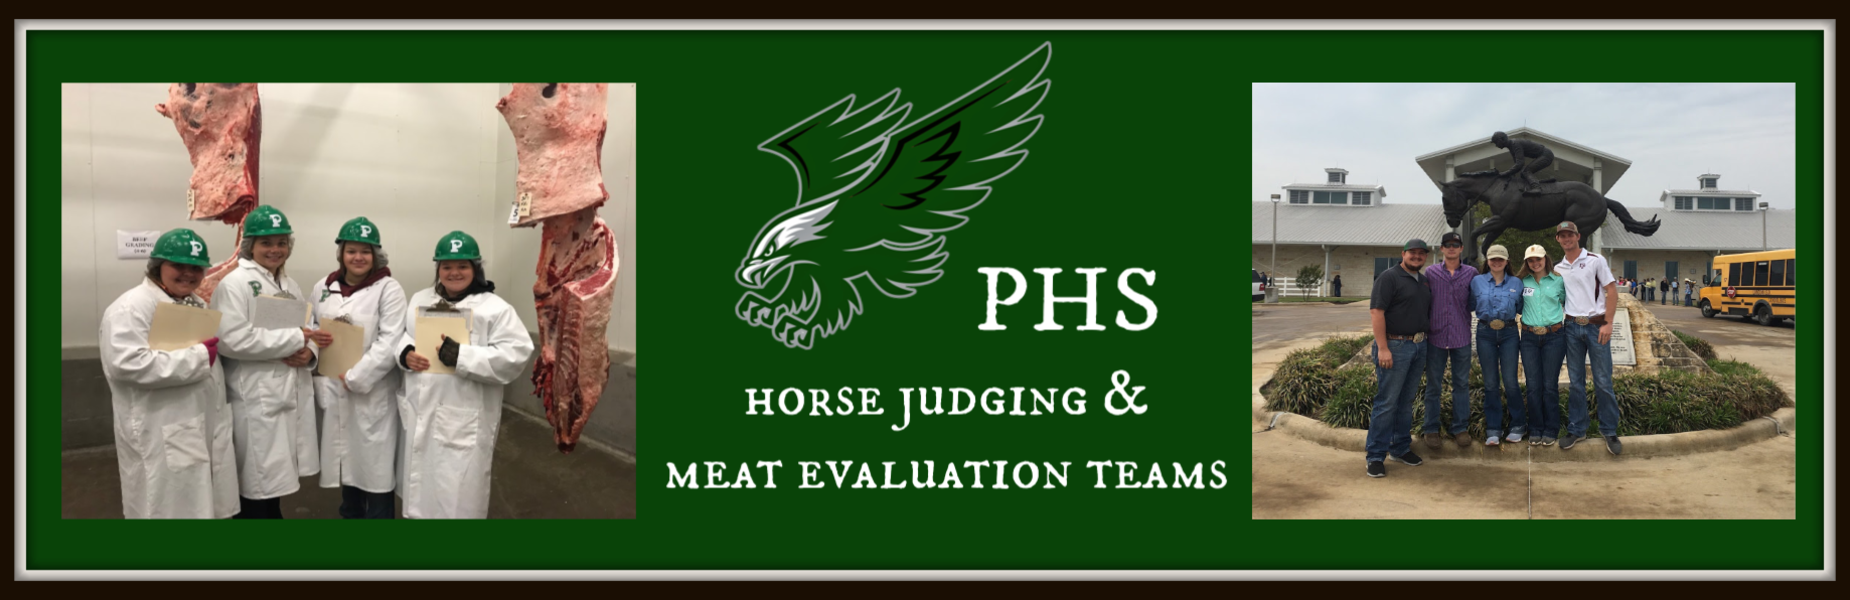 horse judging and meat evaluations teams